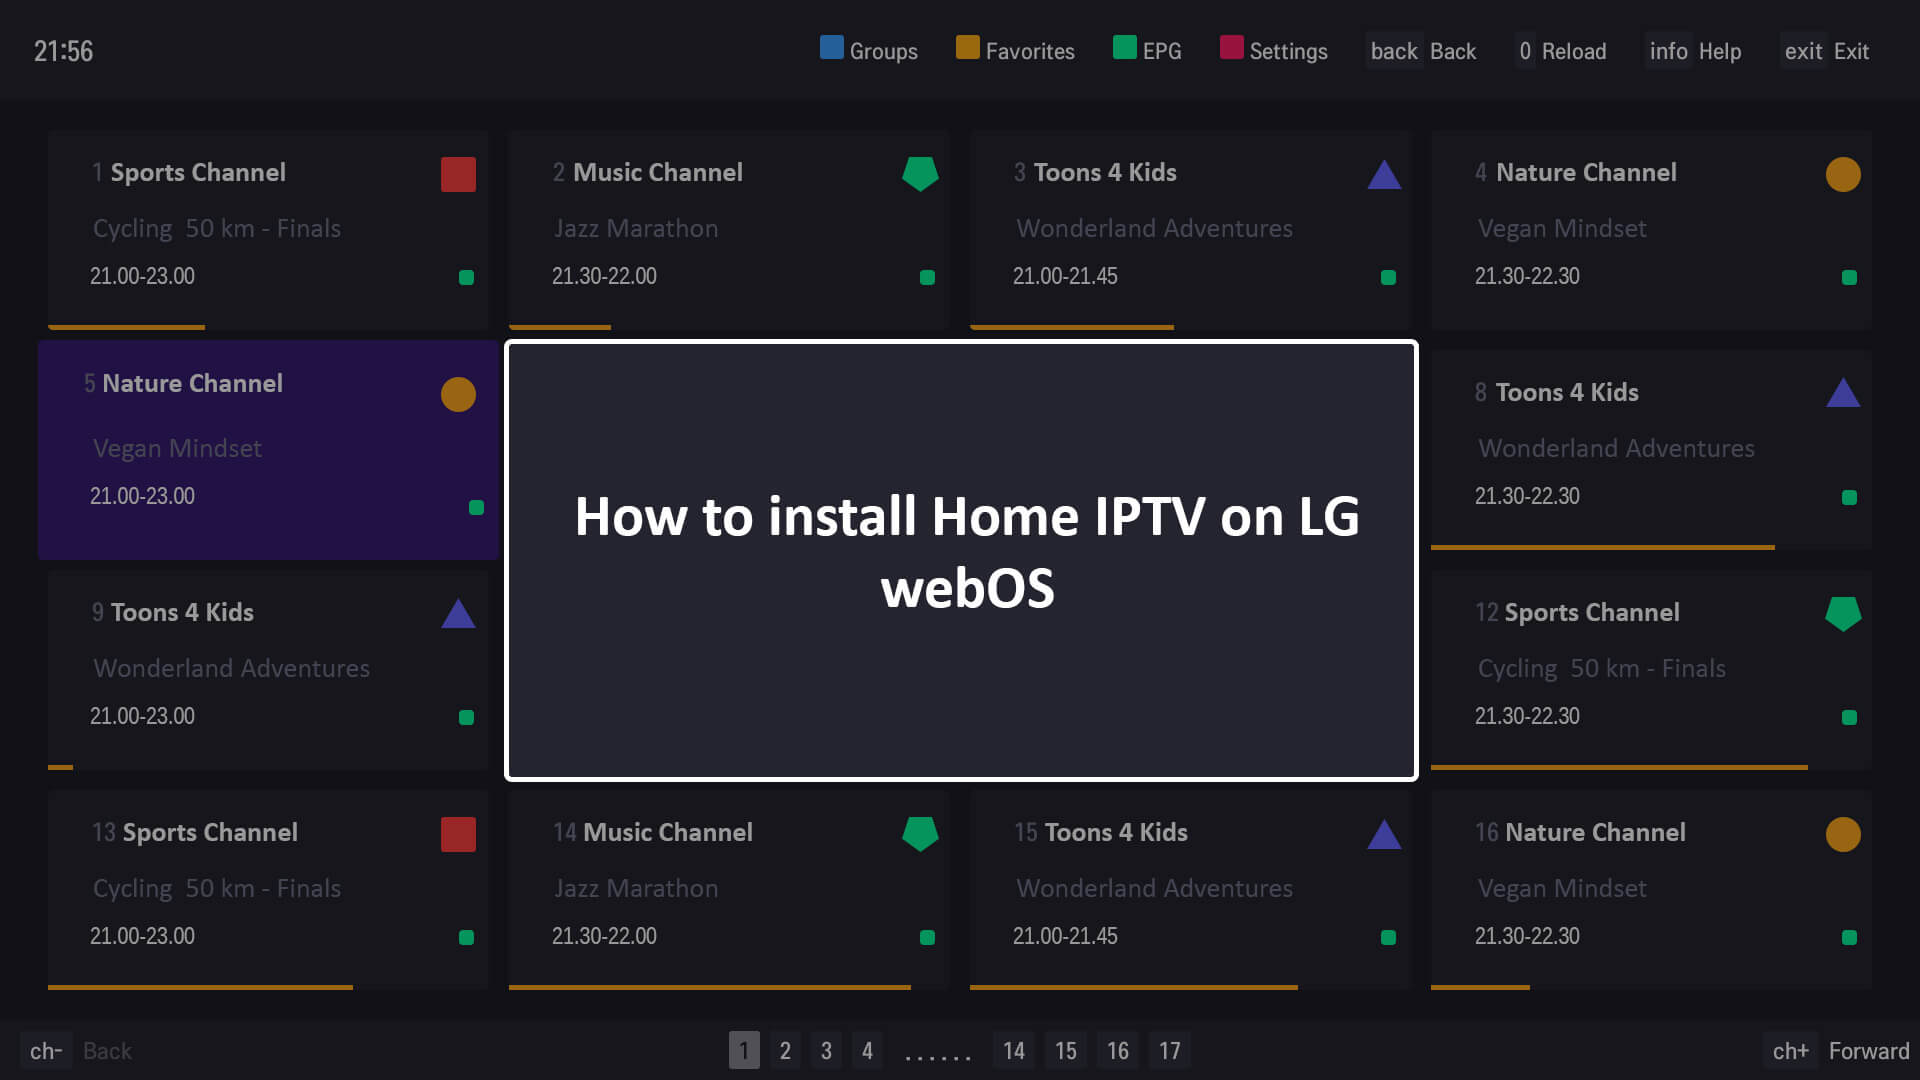 How-to-install-Home-IPTV-on-LG-webOS